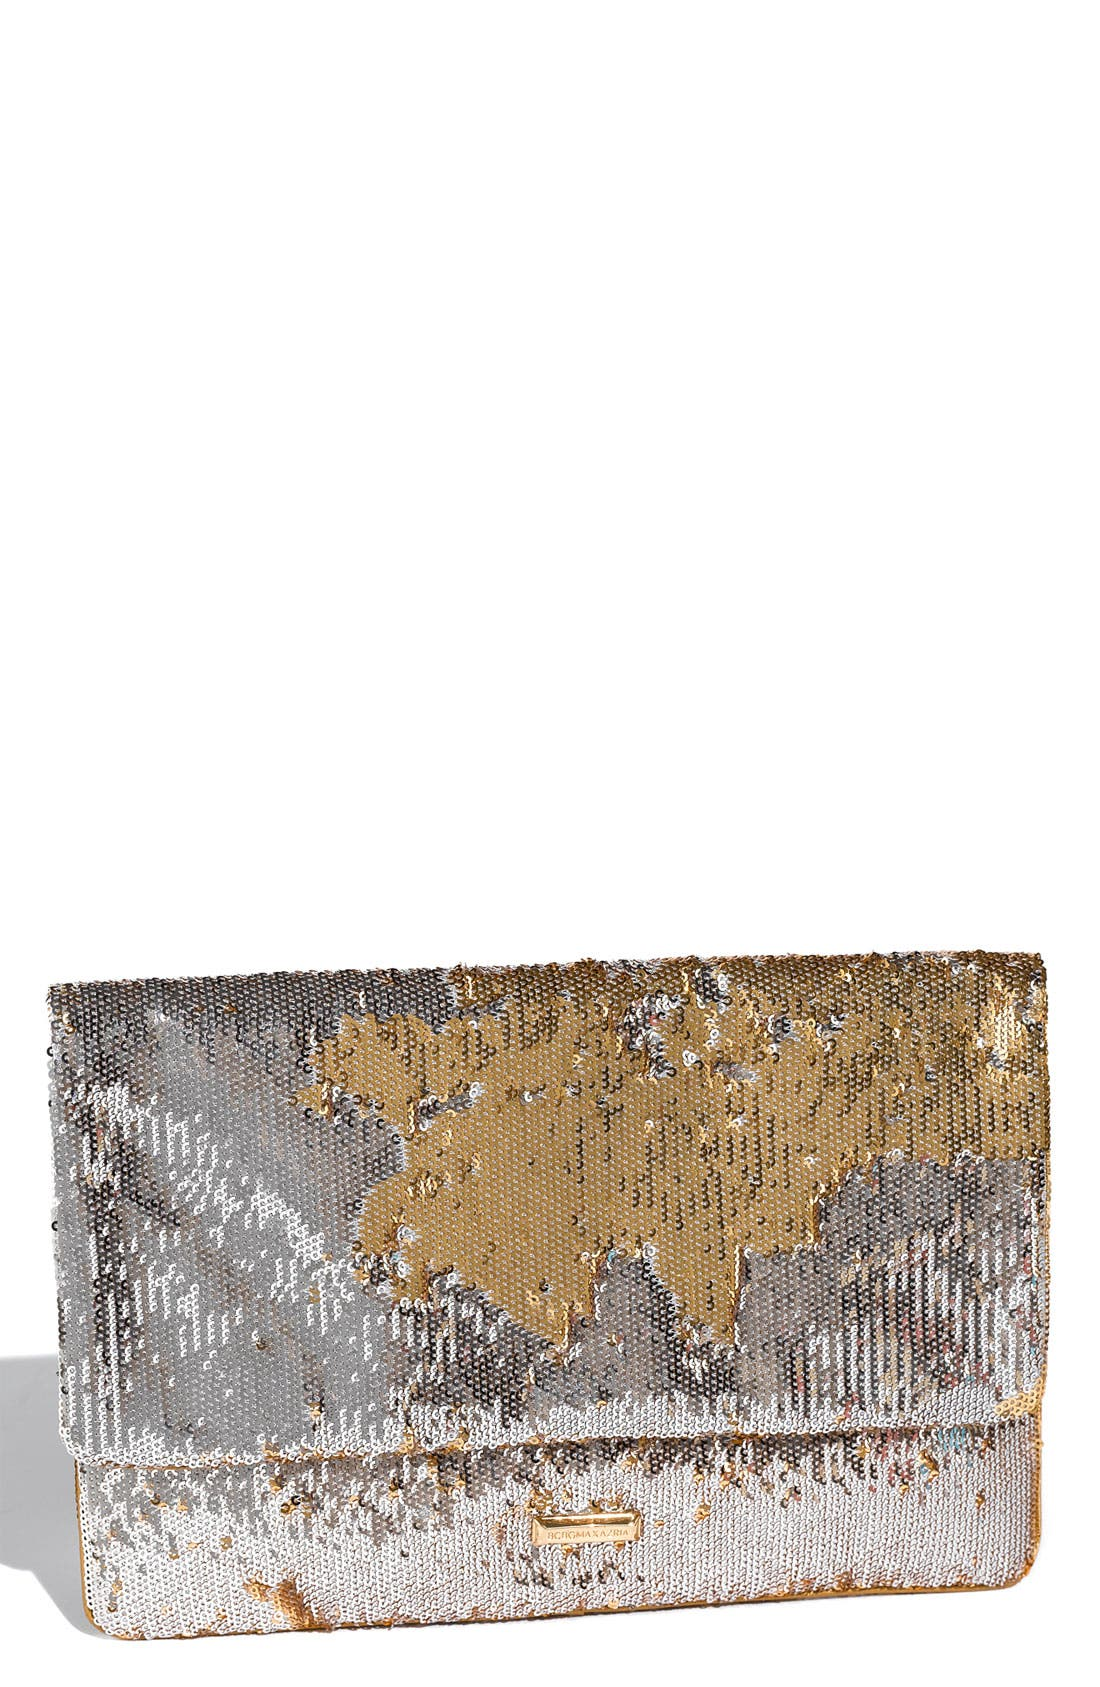 Alternate Image 1 Selected - BCBGMAXAZRIA Reversible Sequin Envelope Clutch